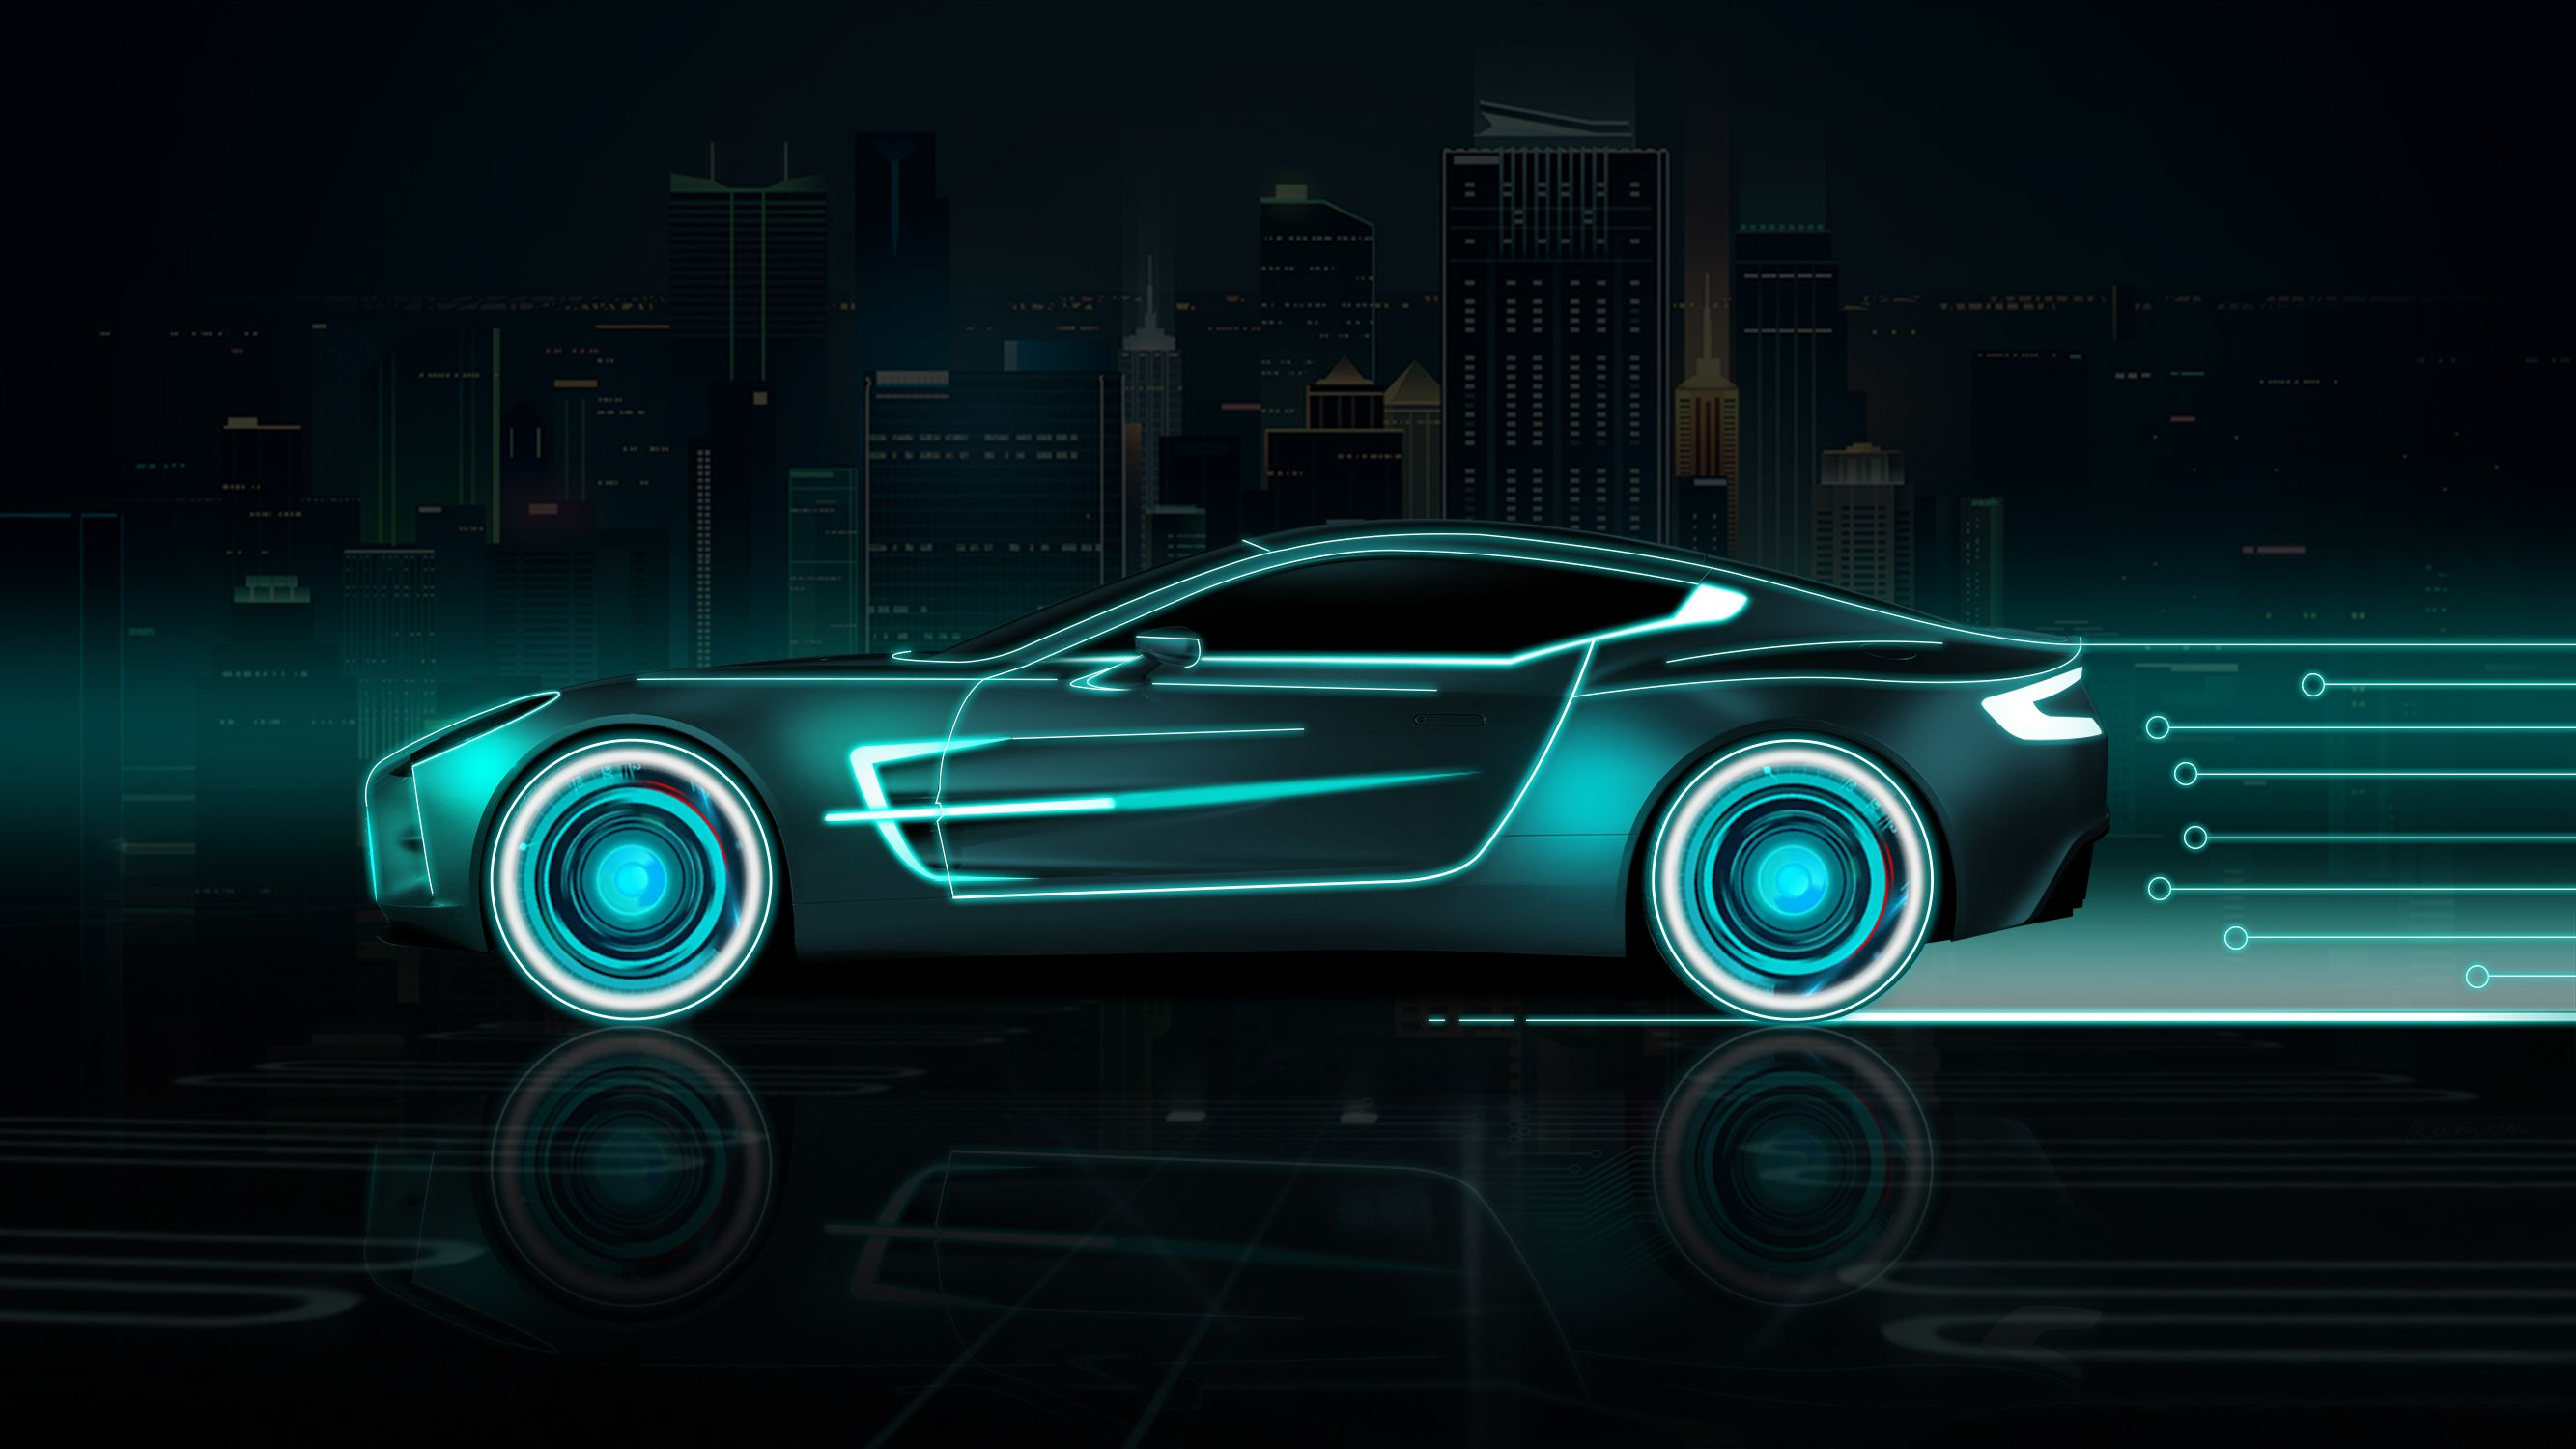 Neon Sports Cars Wallpapers Top Free Neon Sports Cars Backgrounds Wallpaperaccess